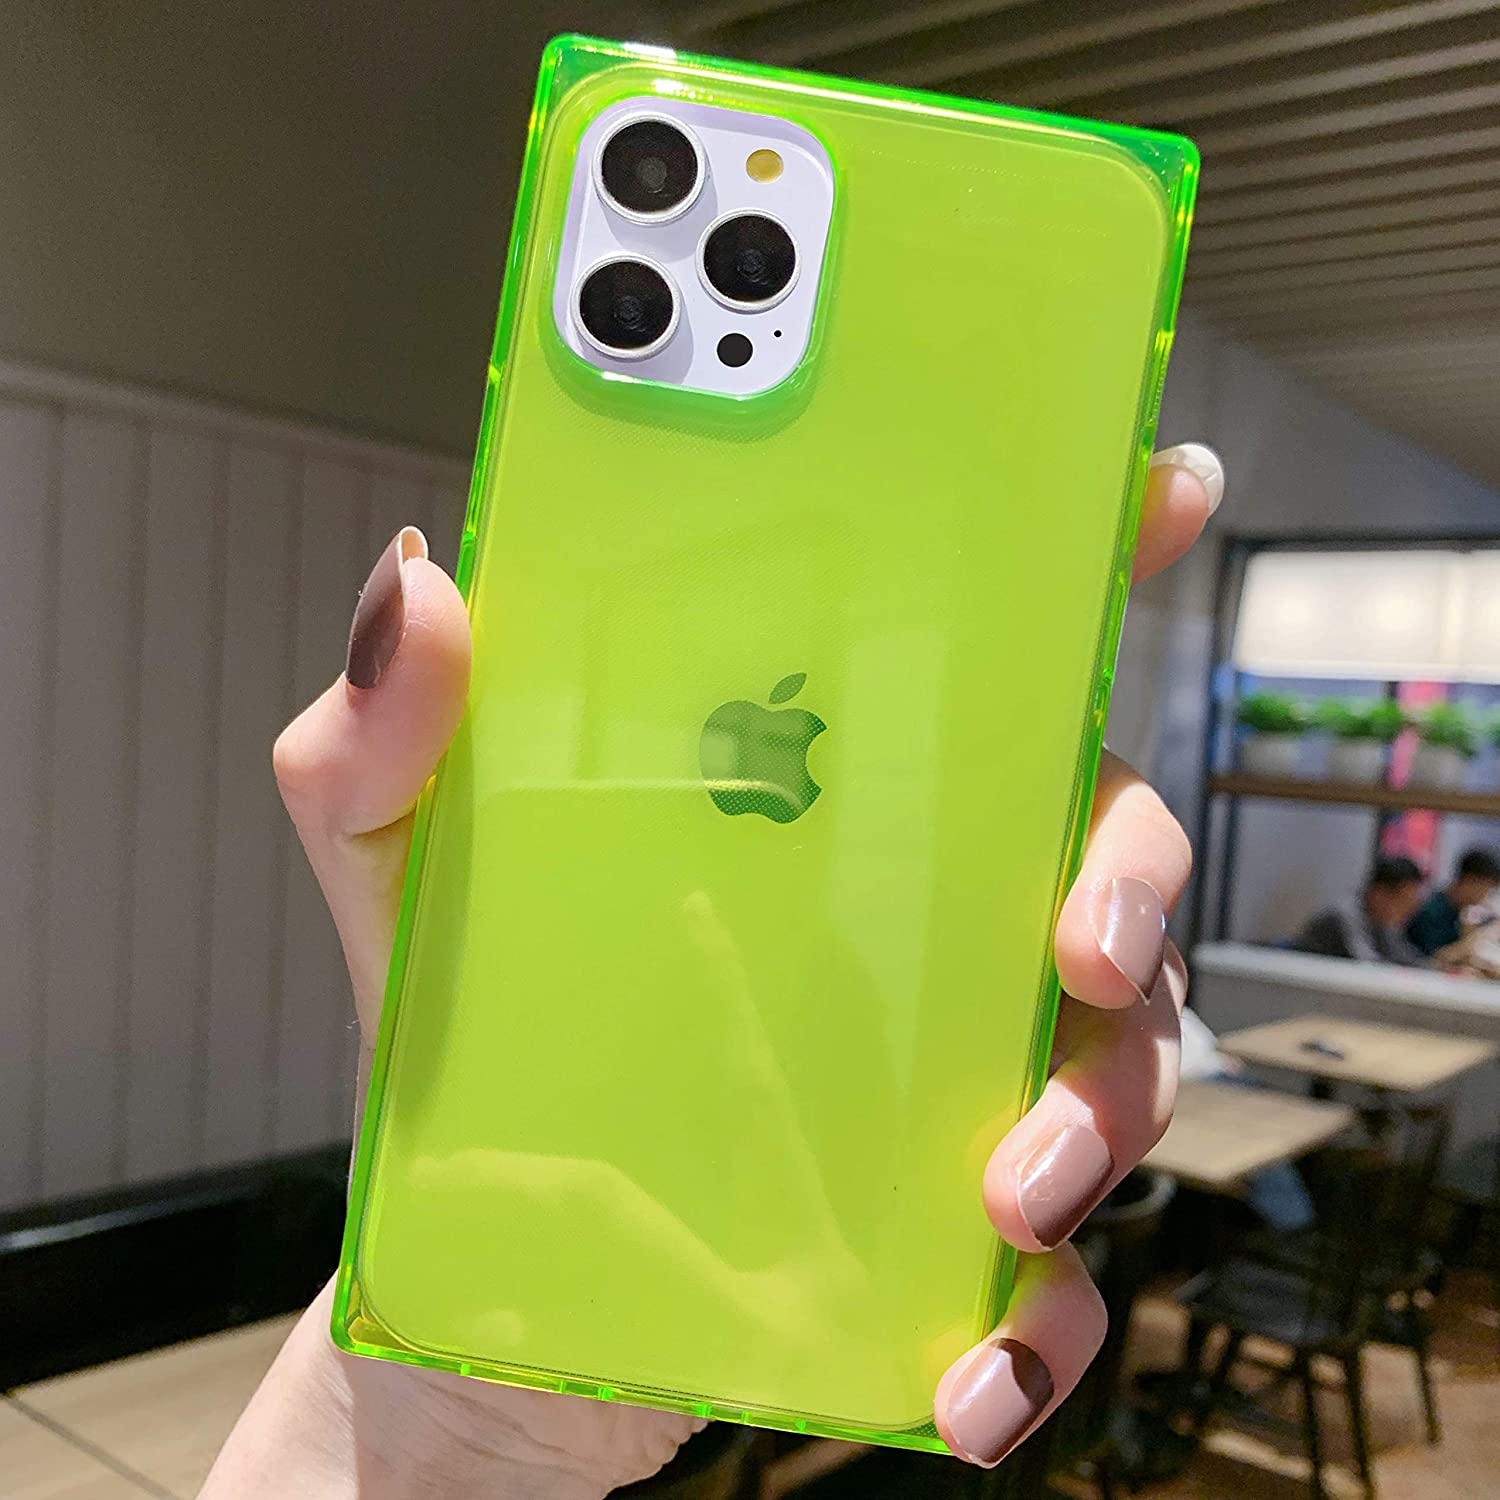 Tzomsze Compatible with iPhone 12 Pro Max Case for Women, Square Clear Cases Reinforced Corners Cushion Slim Shock Absorption TPU Silicone Cover 6.7 Inch 2020 -Fluorescent Green